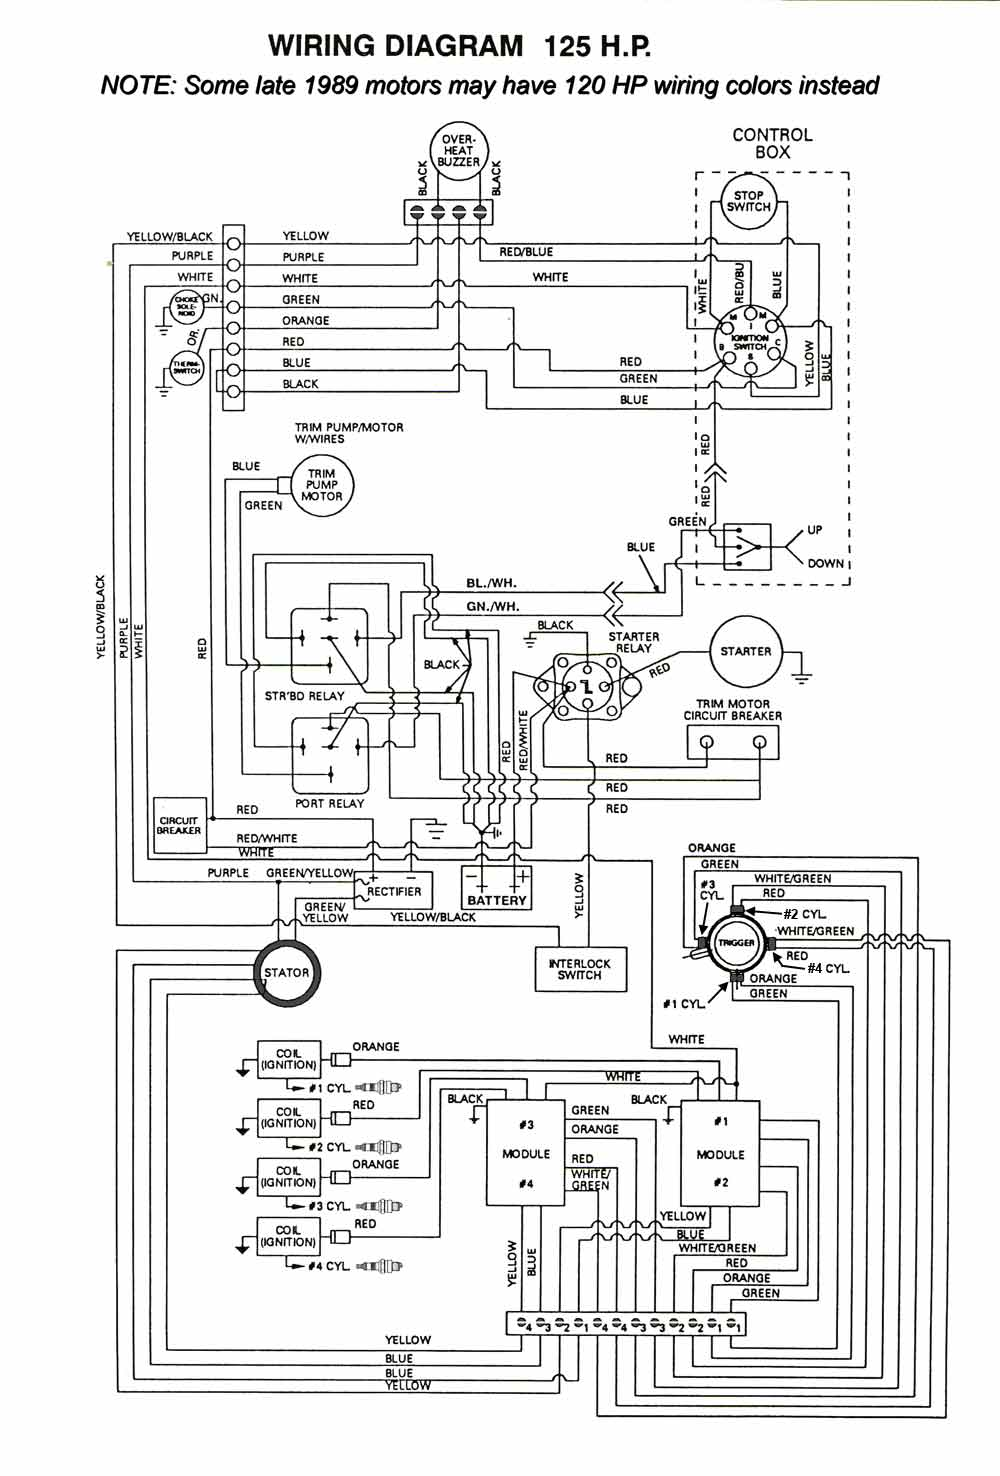 Mastertech Marine Chrysler Force Outboard Wiring Diagrams Alternator Diagram Harness 125 Hp Thru 1989 Models